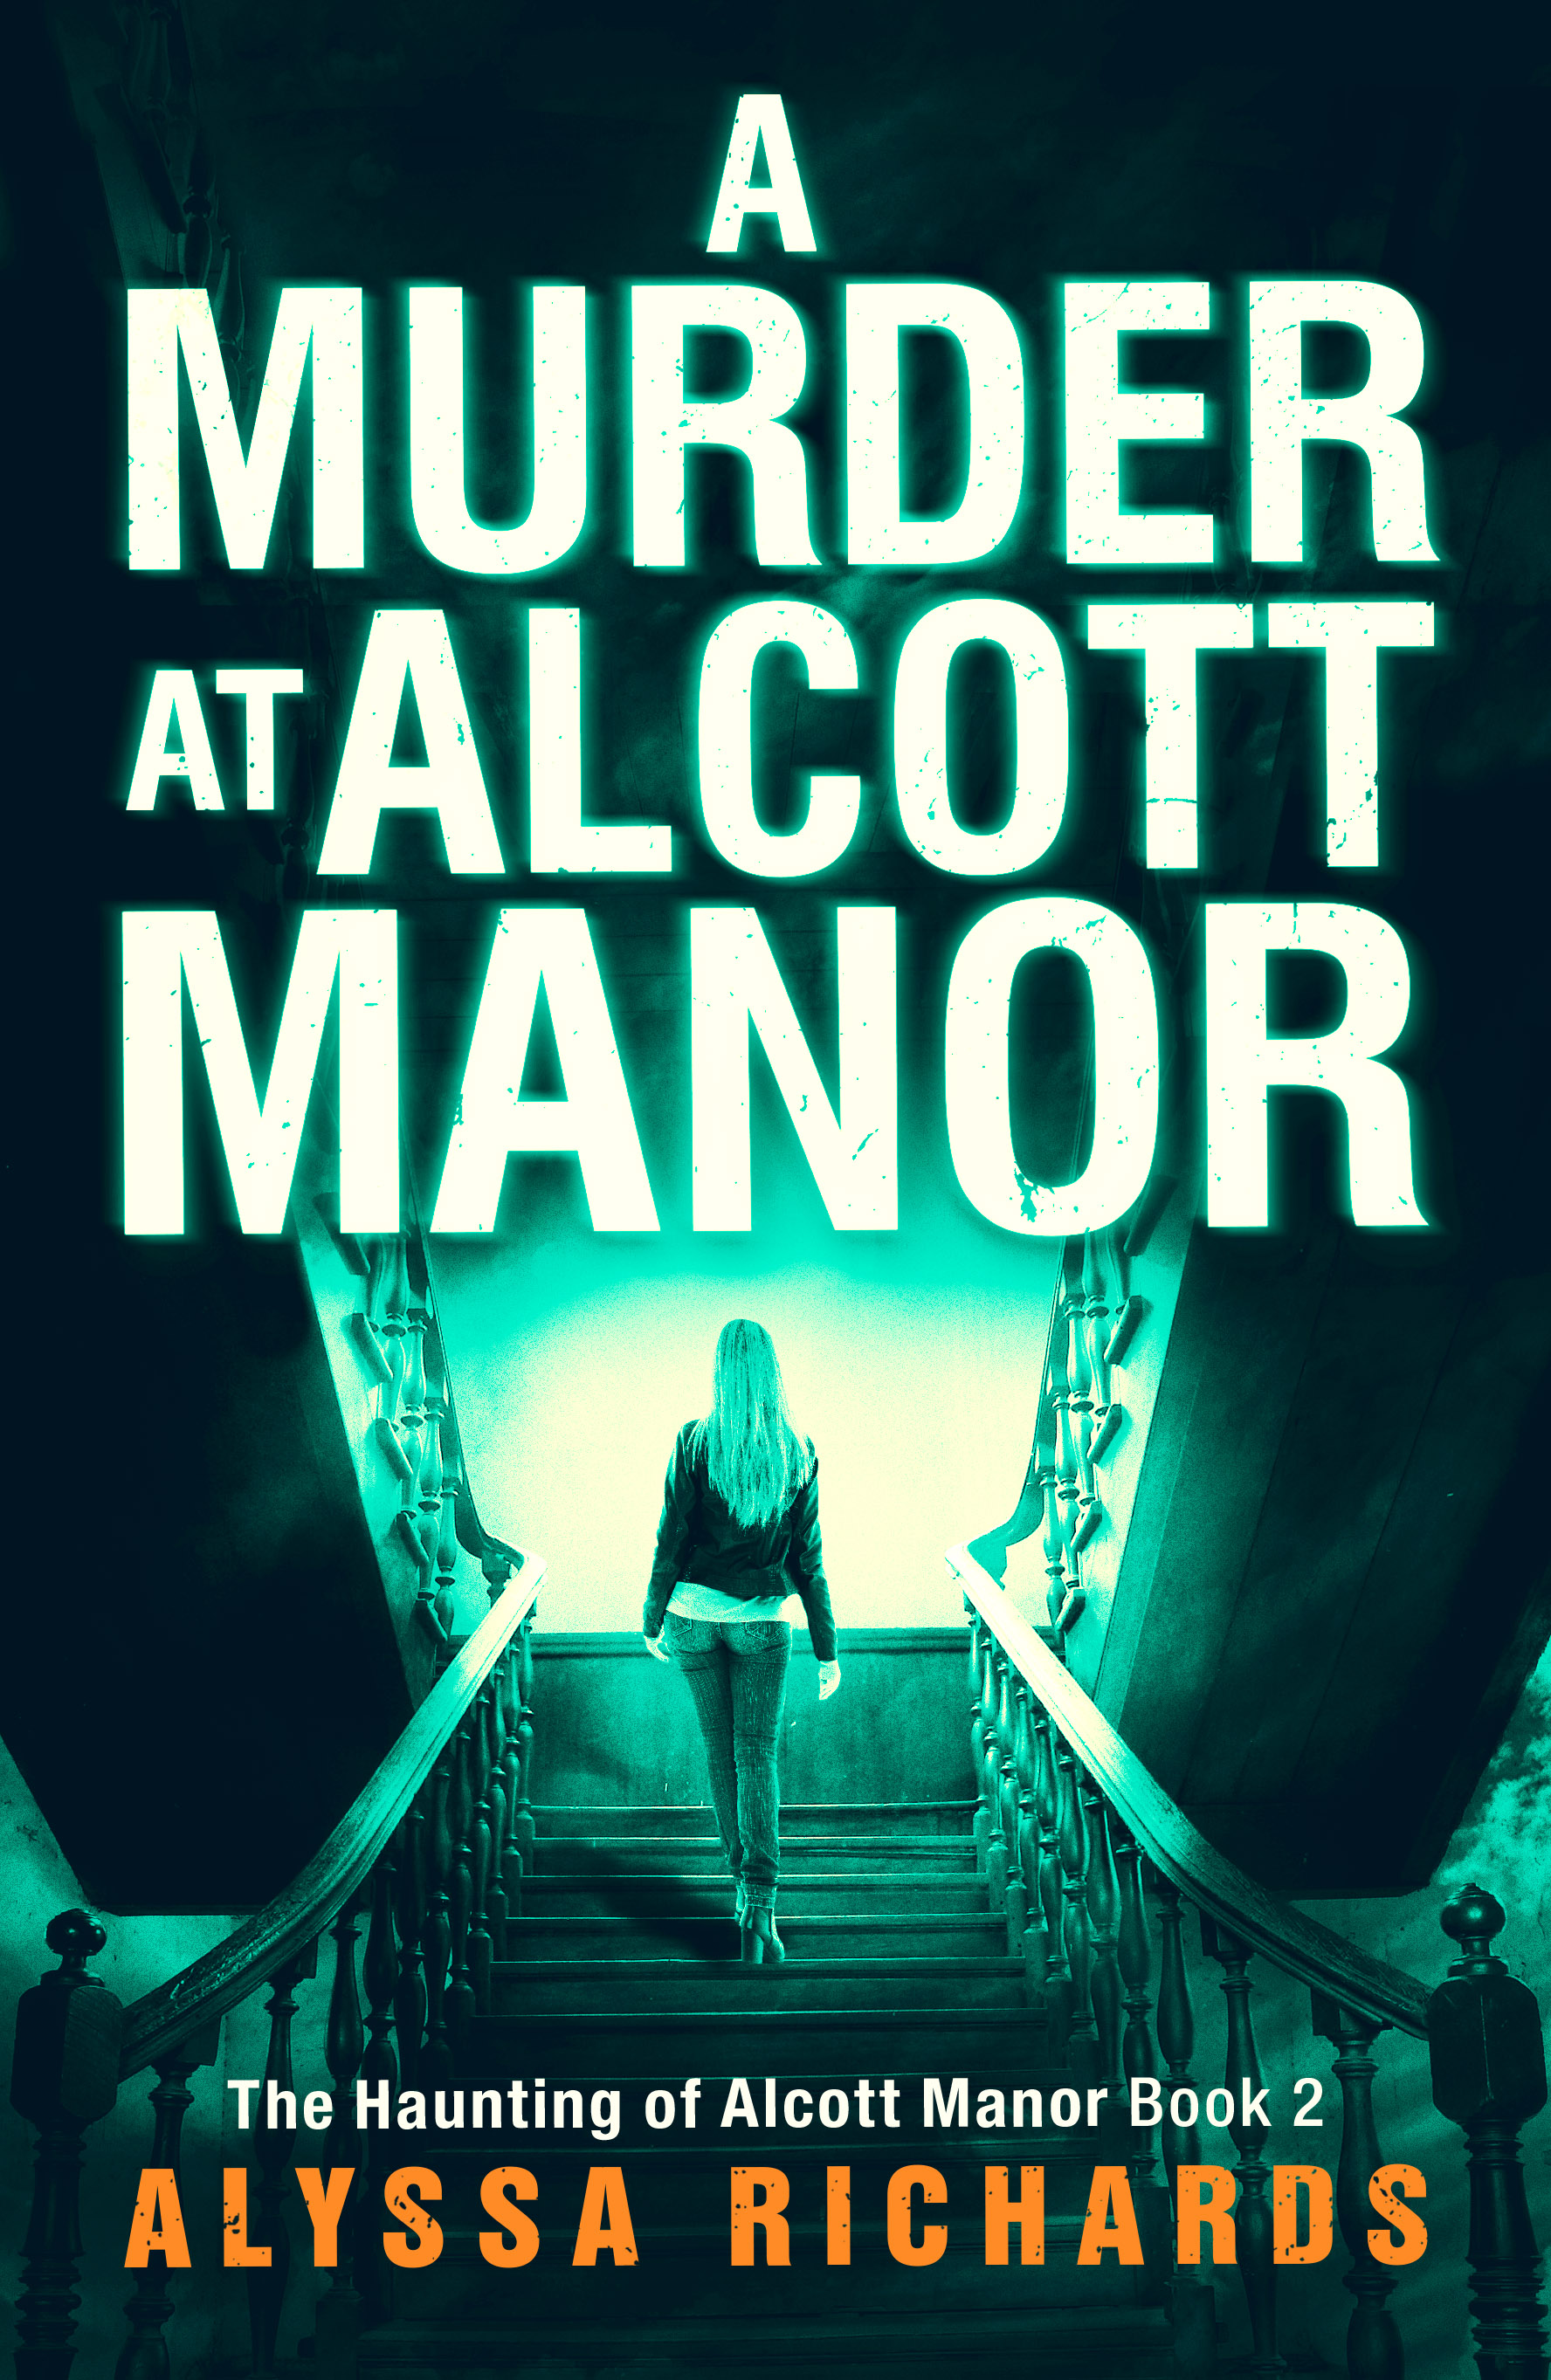 Murder at Alcott Manor